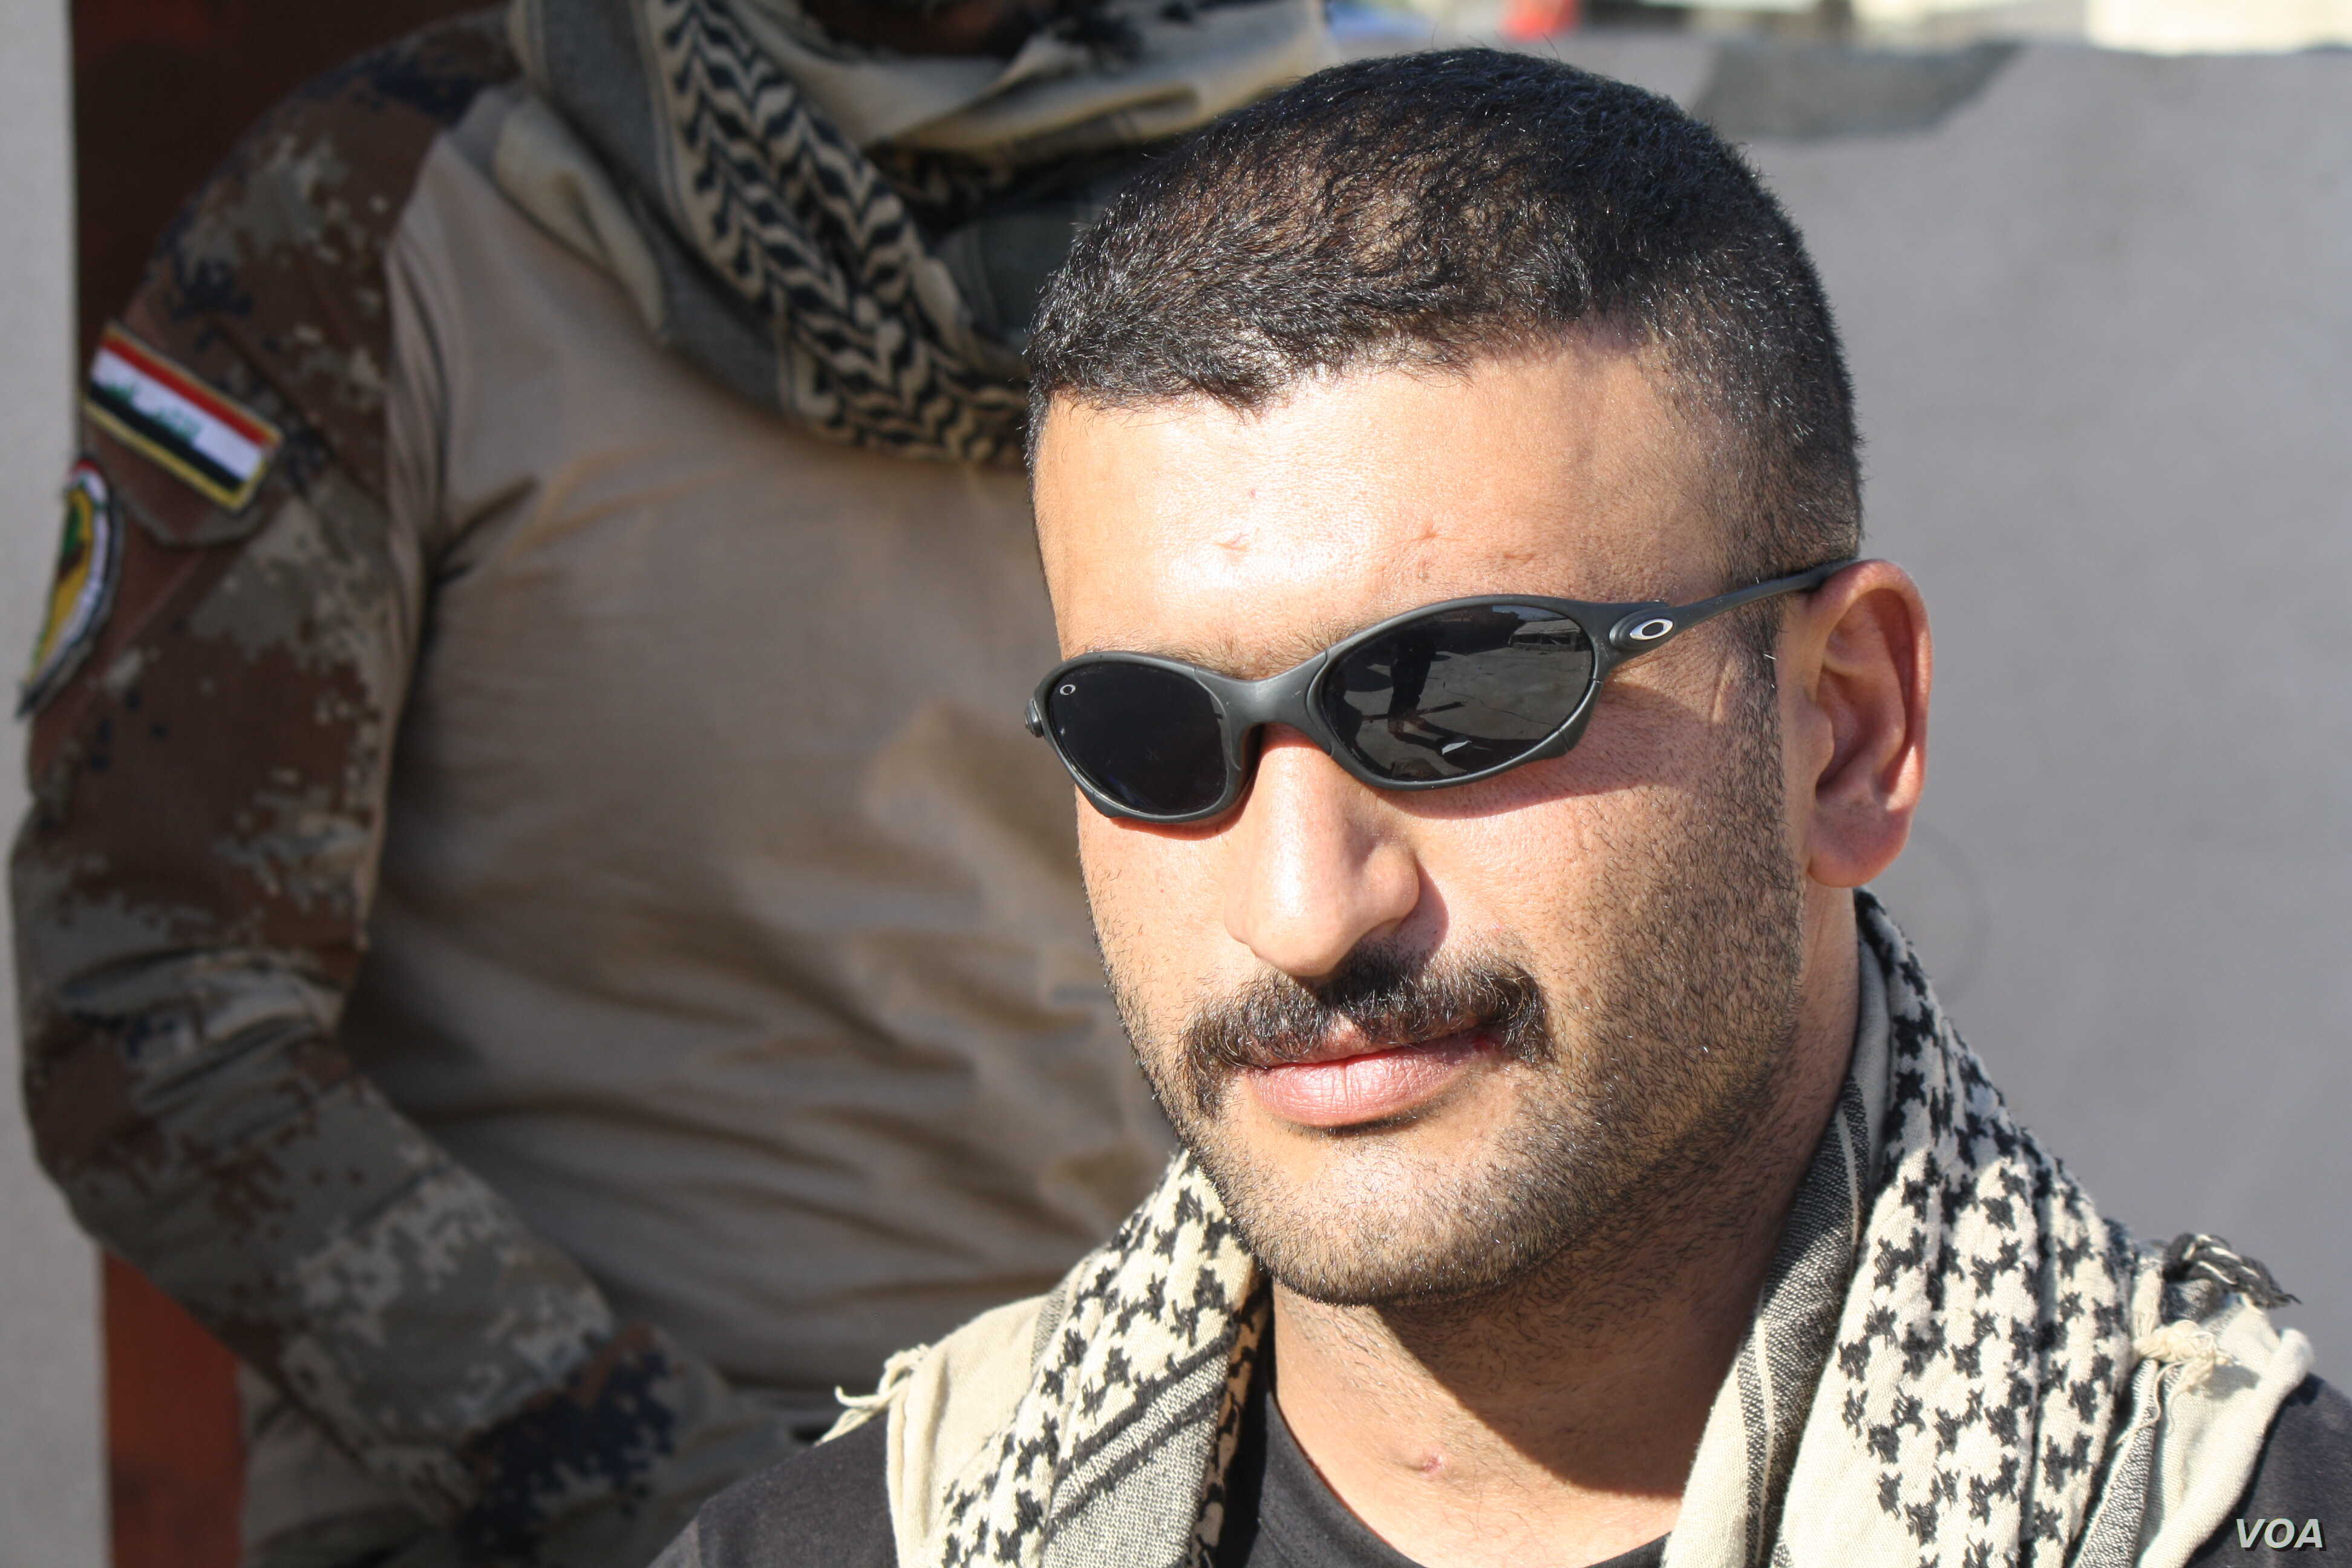 Iraqi Army Captain Raad Qasim says his battalion is moving forward slowly, trying to avoid killing civilians sometimes handcuffed to militants as they retreat on Nov. 19, 2016 in Mosul, Iraq.